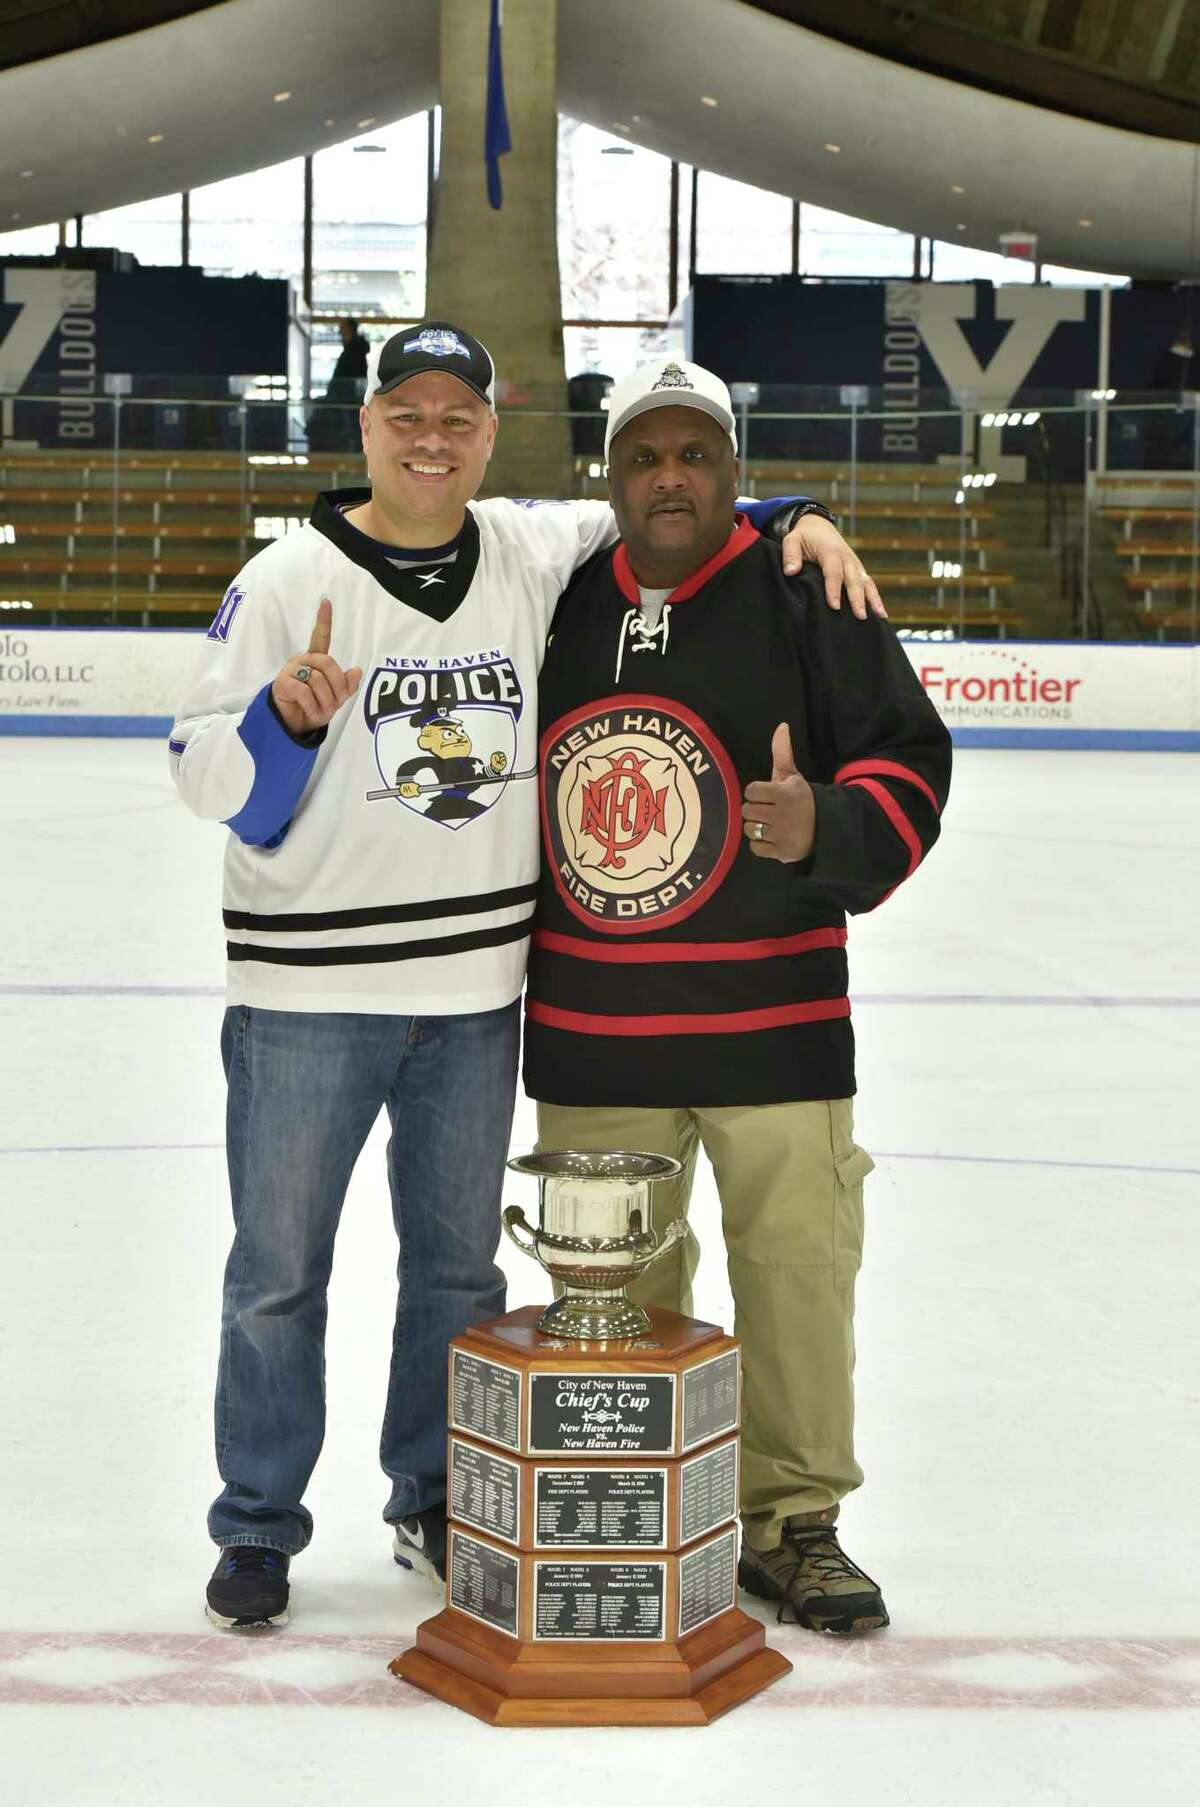 New Haven, Connecticut - Saturday, March 30, 2019: The 23rd annual Chief's Cup charity fundraising hockey game at Yale University's Ingalls Rink in New Haven Saturday afternoon between the New Haven Police Department and the New Haven Fire Department. Honored were Police Officer of the Year Raul Pereira and Firefighter of the Year Michael Miller. The NHPD beneficiary of the event was Officer Tom Murray and the NHFD beneficiary was Clencie Osorio, of Lt. Osorio.